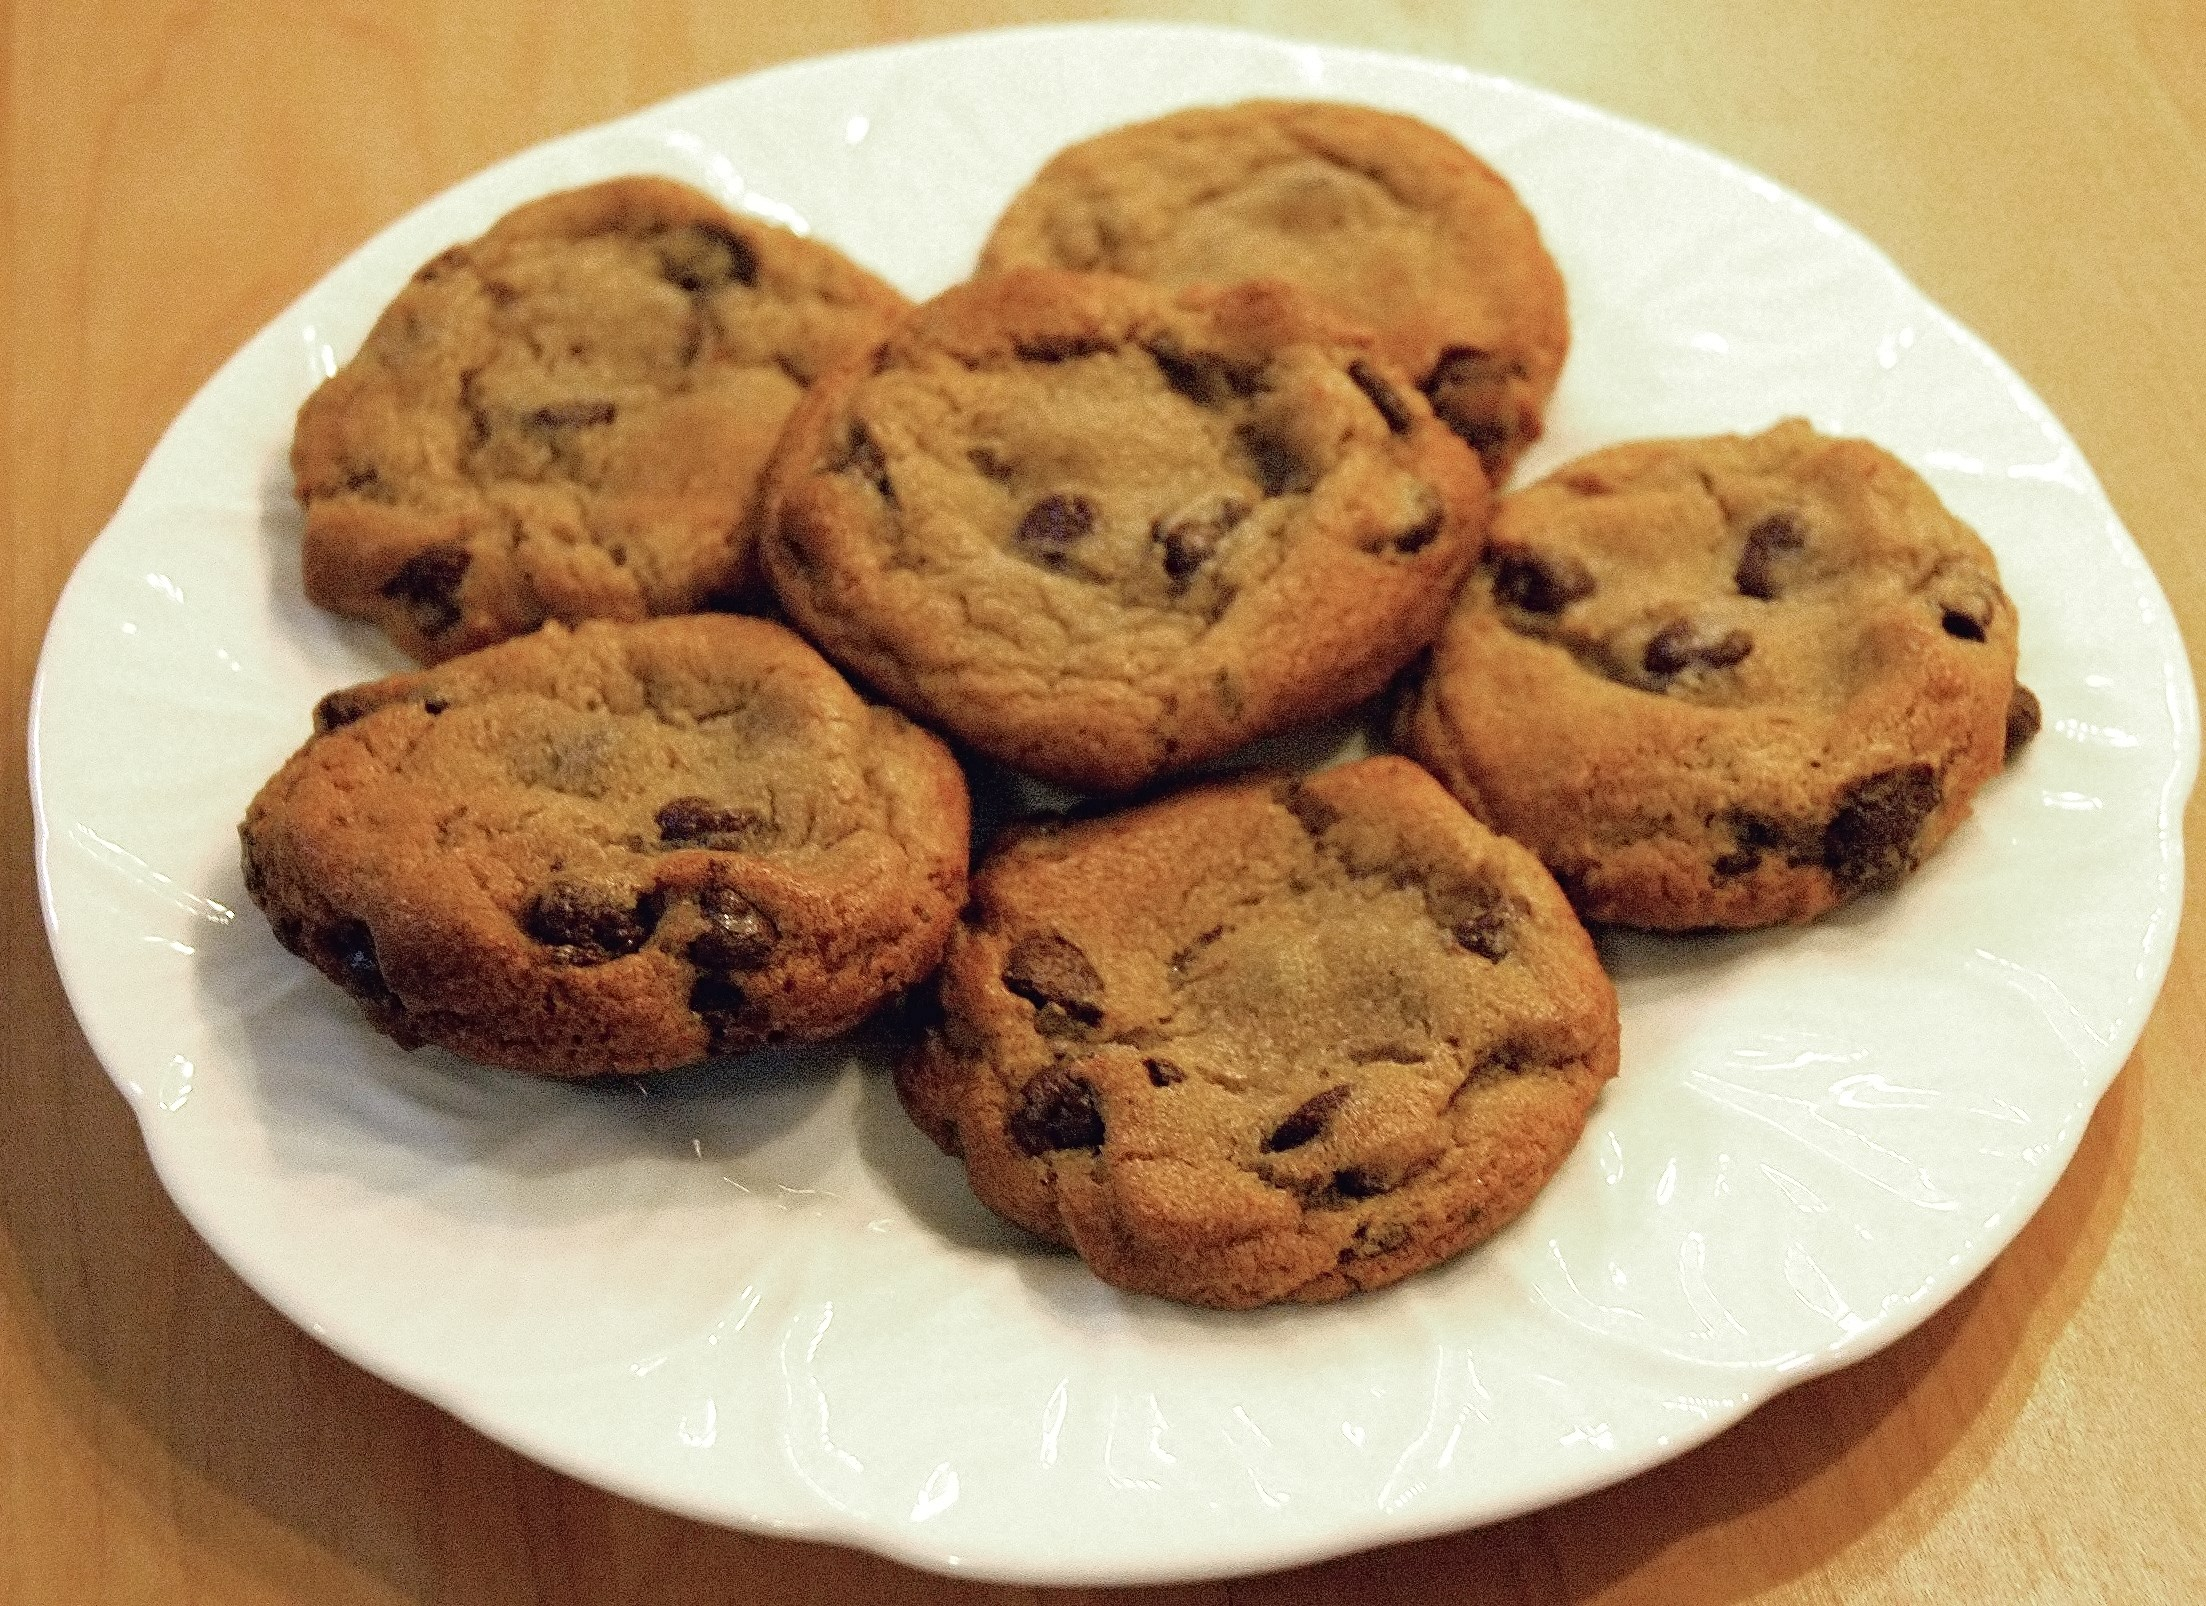 File:Chocolate chip cookies.jpg - Wikipedia